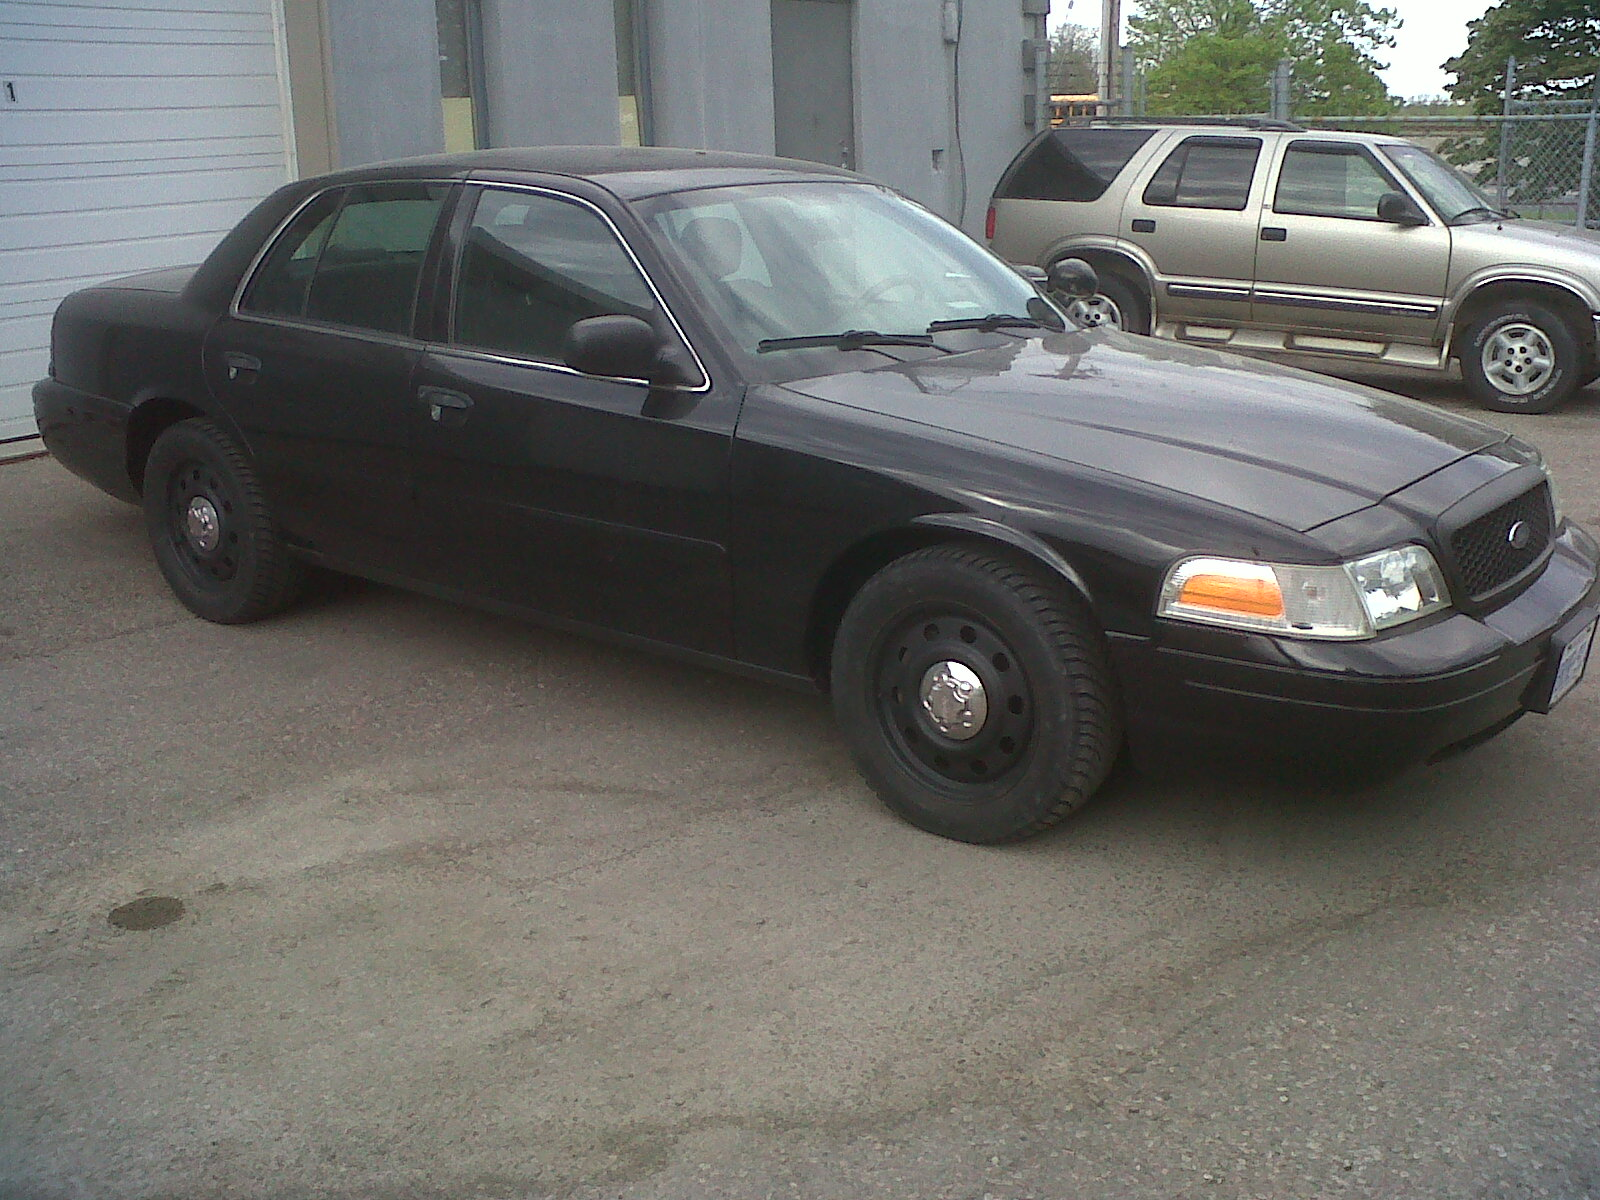 2006 ford crown vic police interceptor mpg. Black Bedroom Furniture Sets. Home Design Ideas